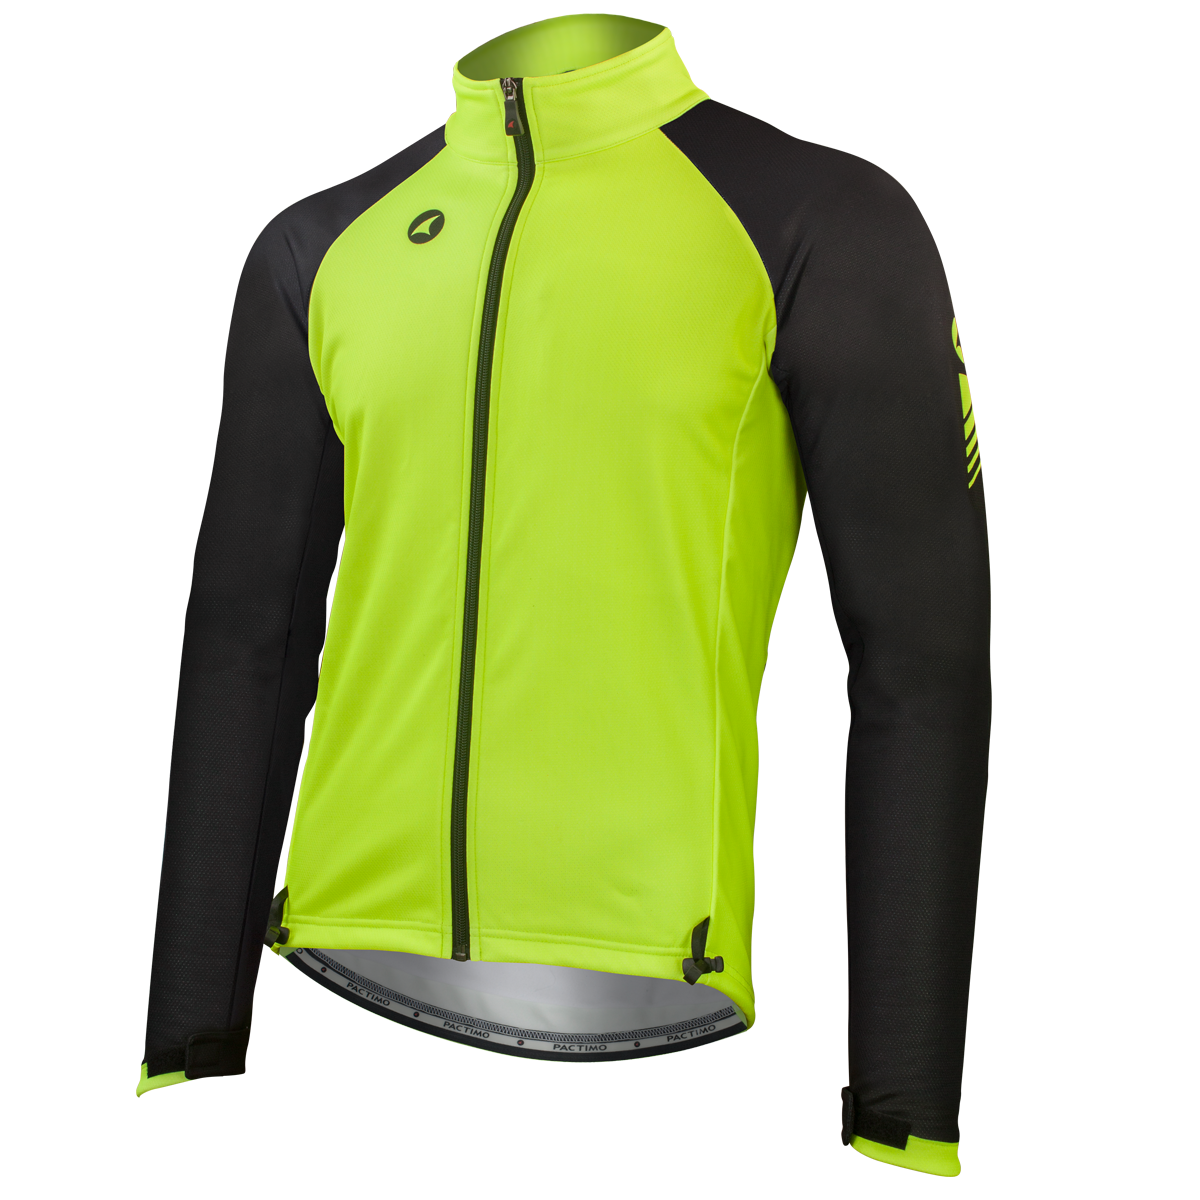 e4ef6dfa4 Ouray Thermal Cycling Jacket